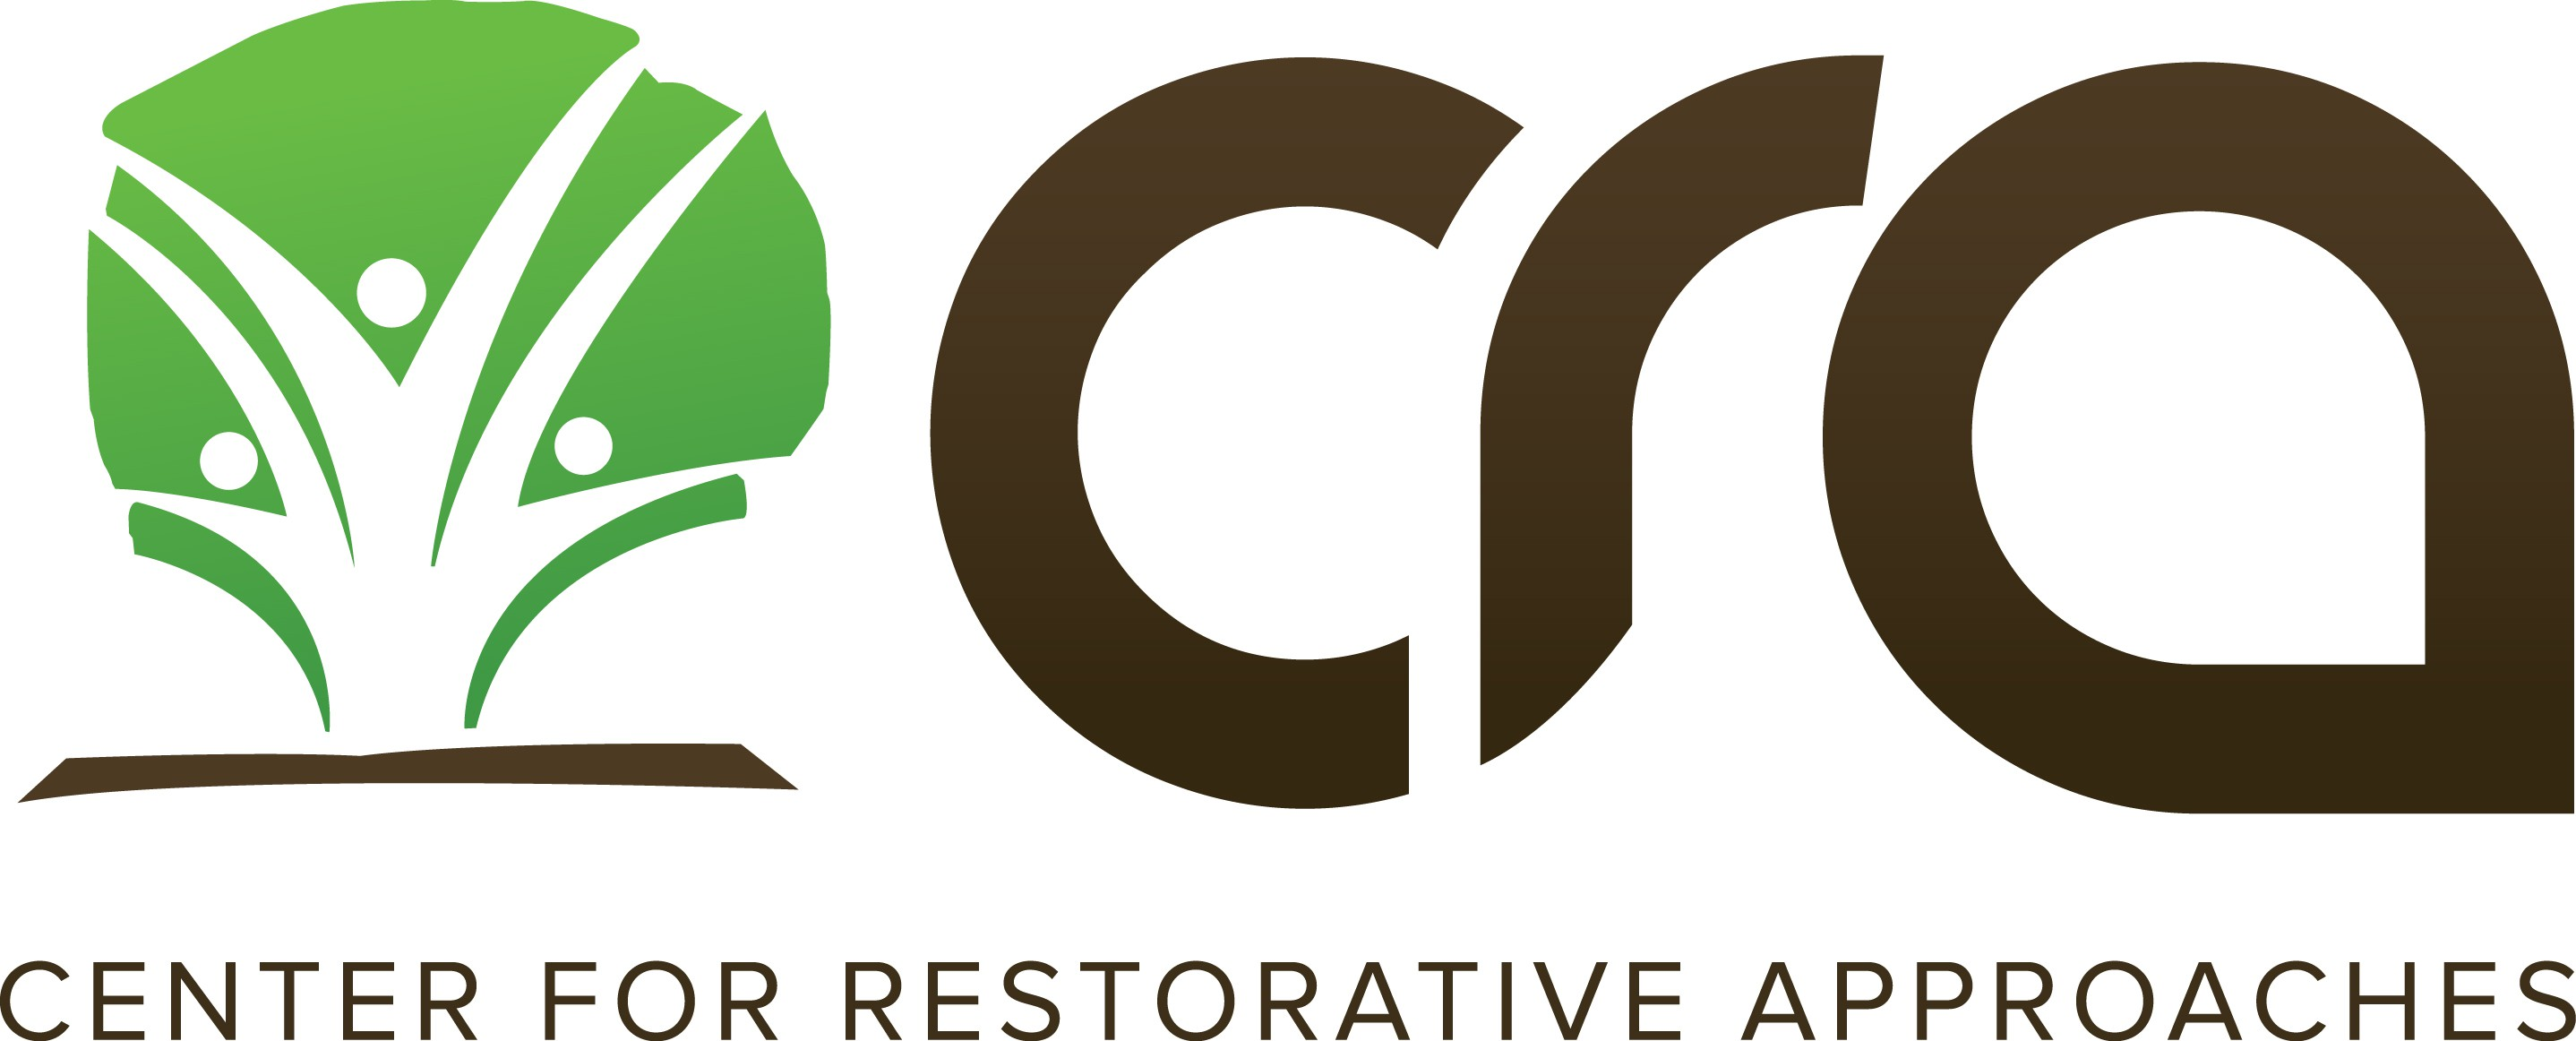 Center for Restorative Approaches